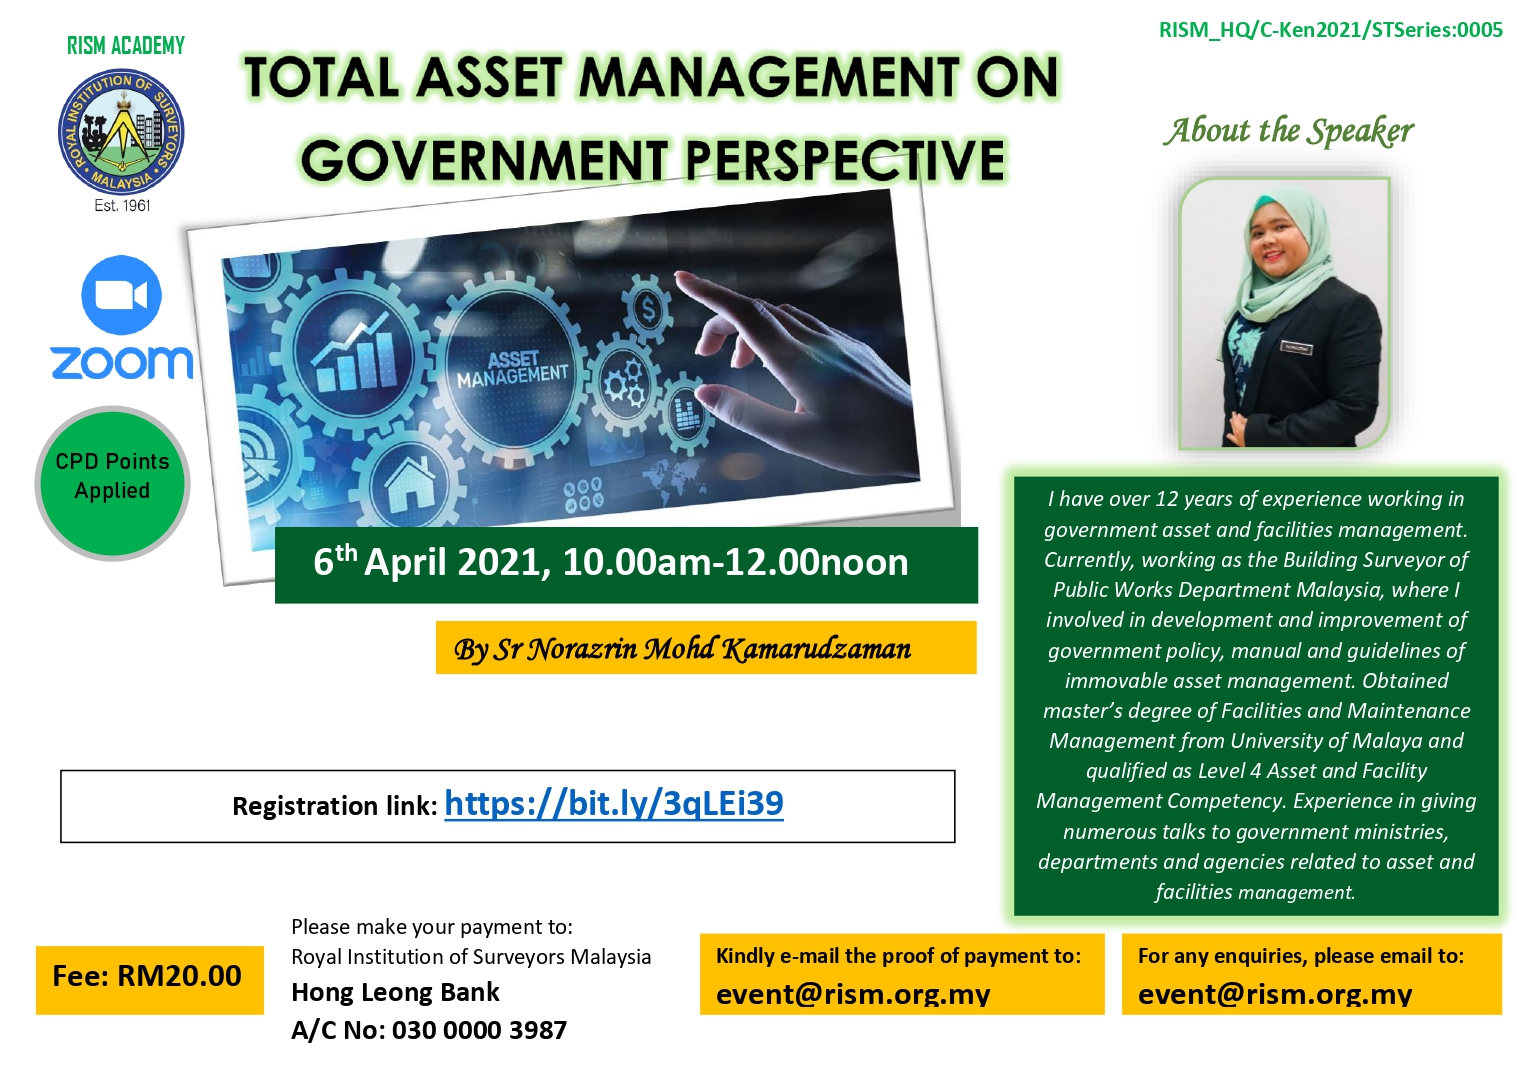 Total Asset Management on Government Perspective by RISM Academy @ ROYAL INSTITUTION OF SURVEYORS MALAYSIA   Petaling Jaya   Selangor   Malaysia